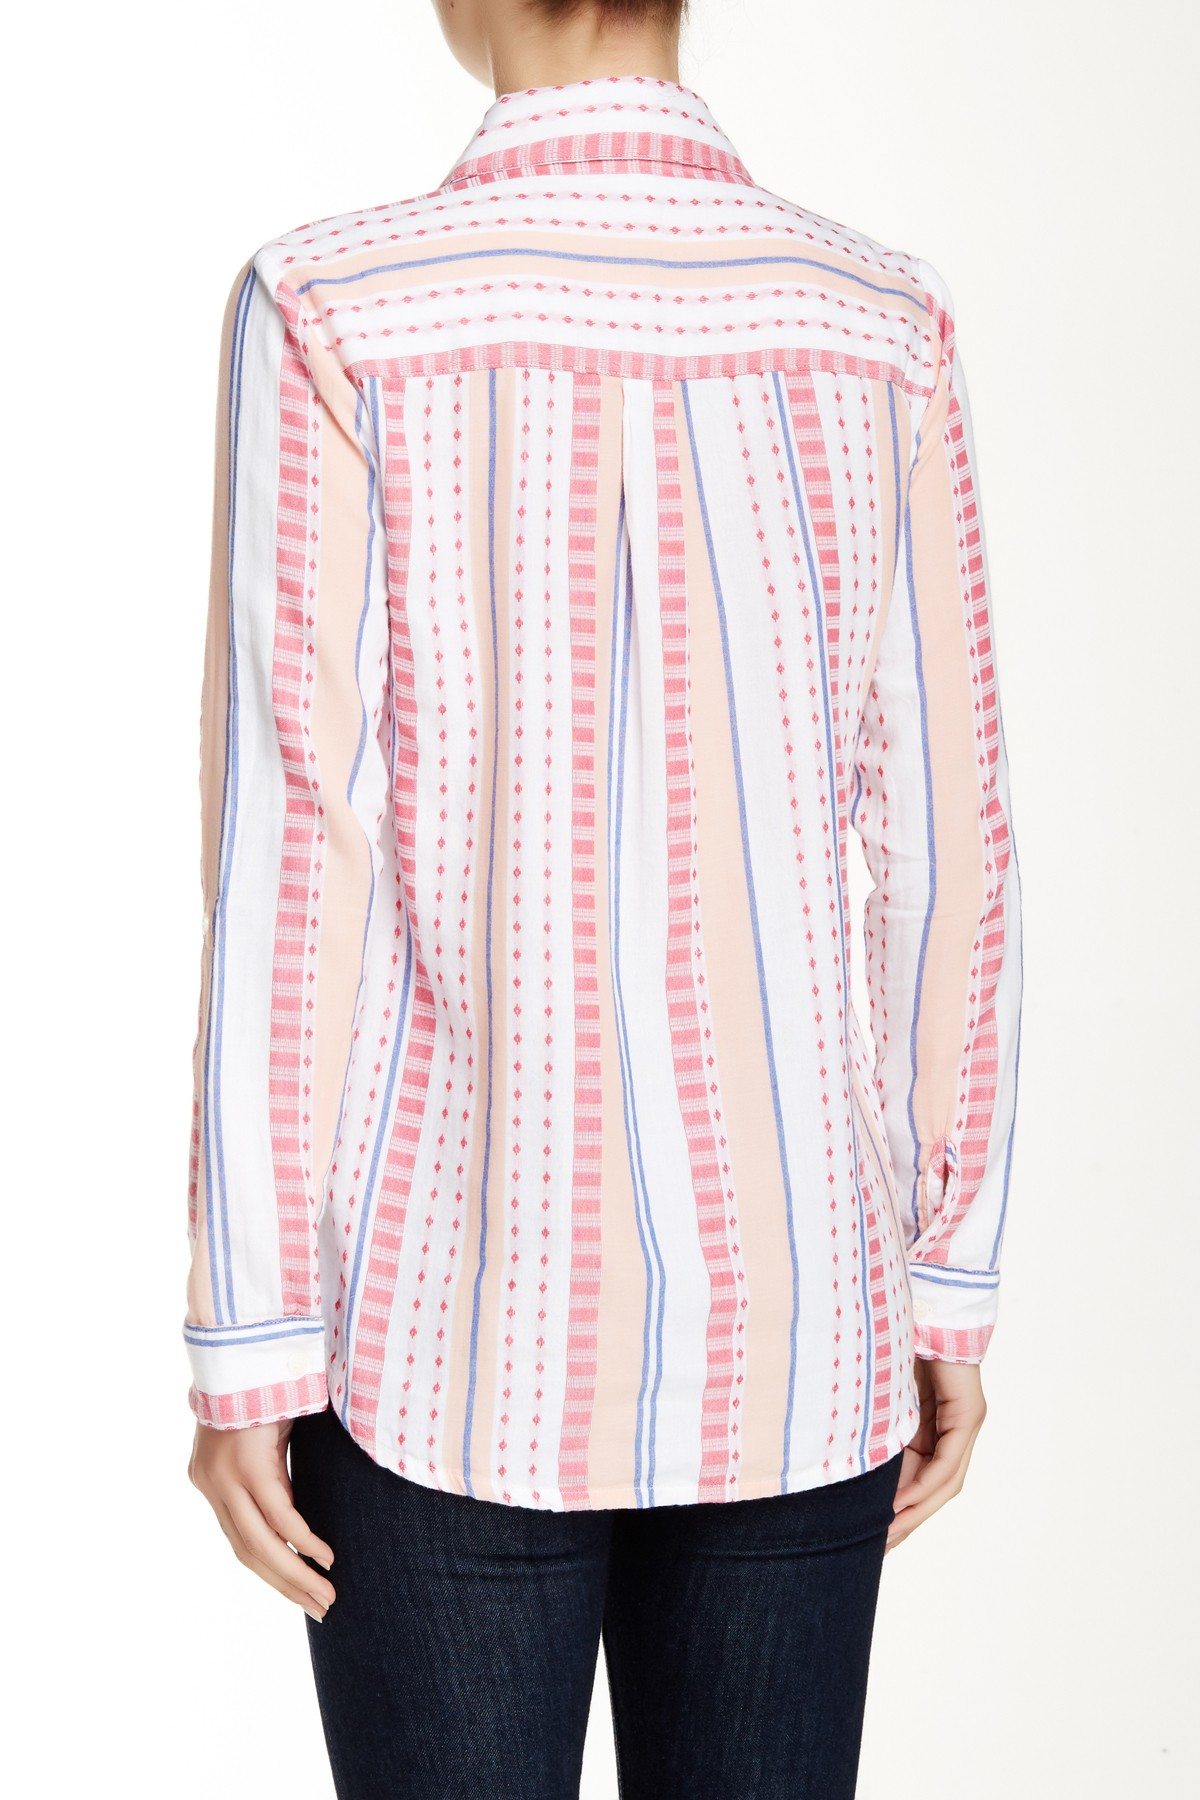 2c35a2874 Lyst - Splendid Henley Embroidered Shirt in Pink